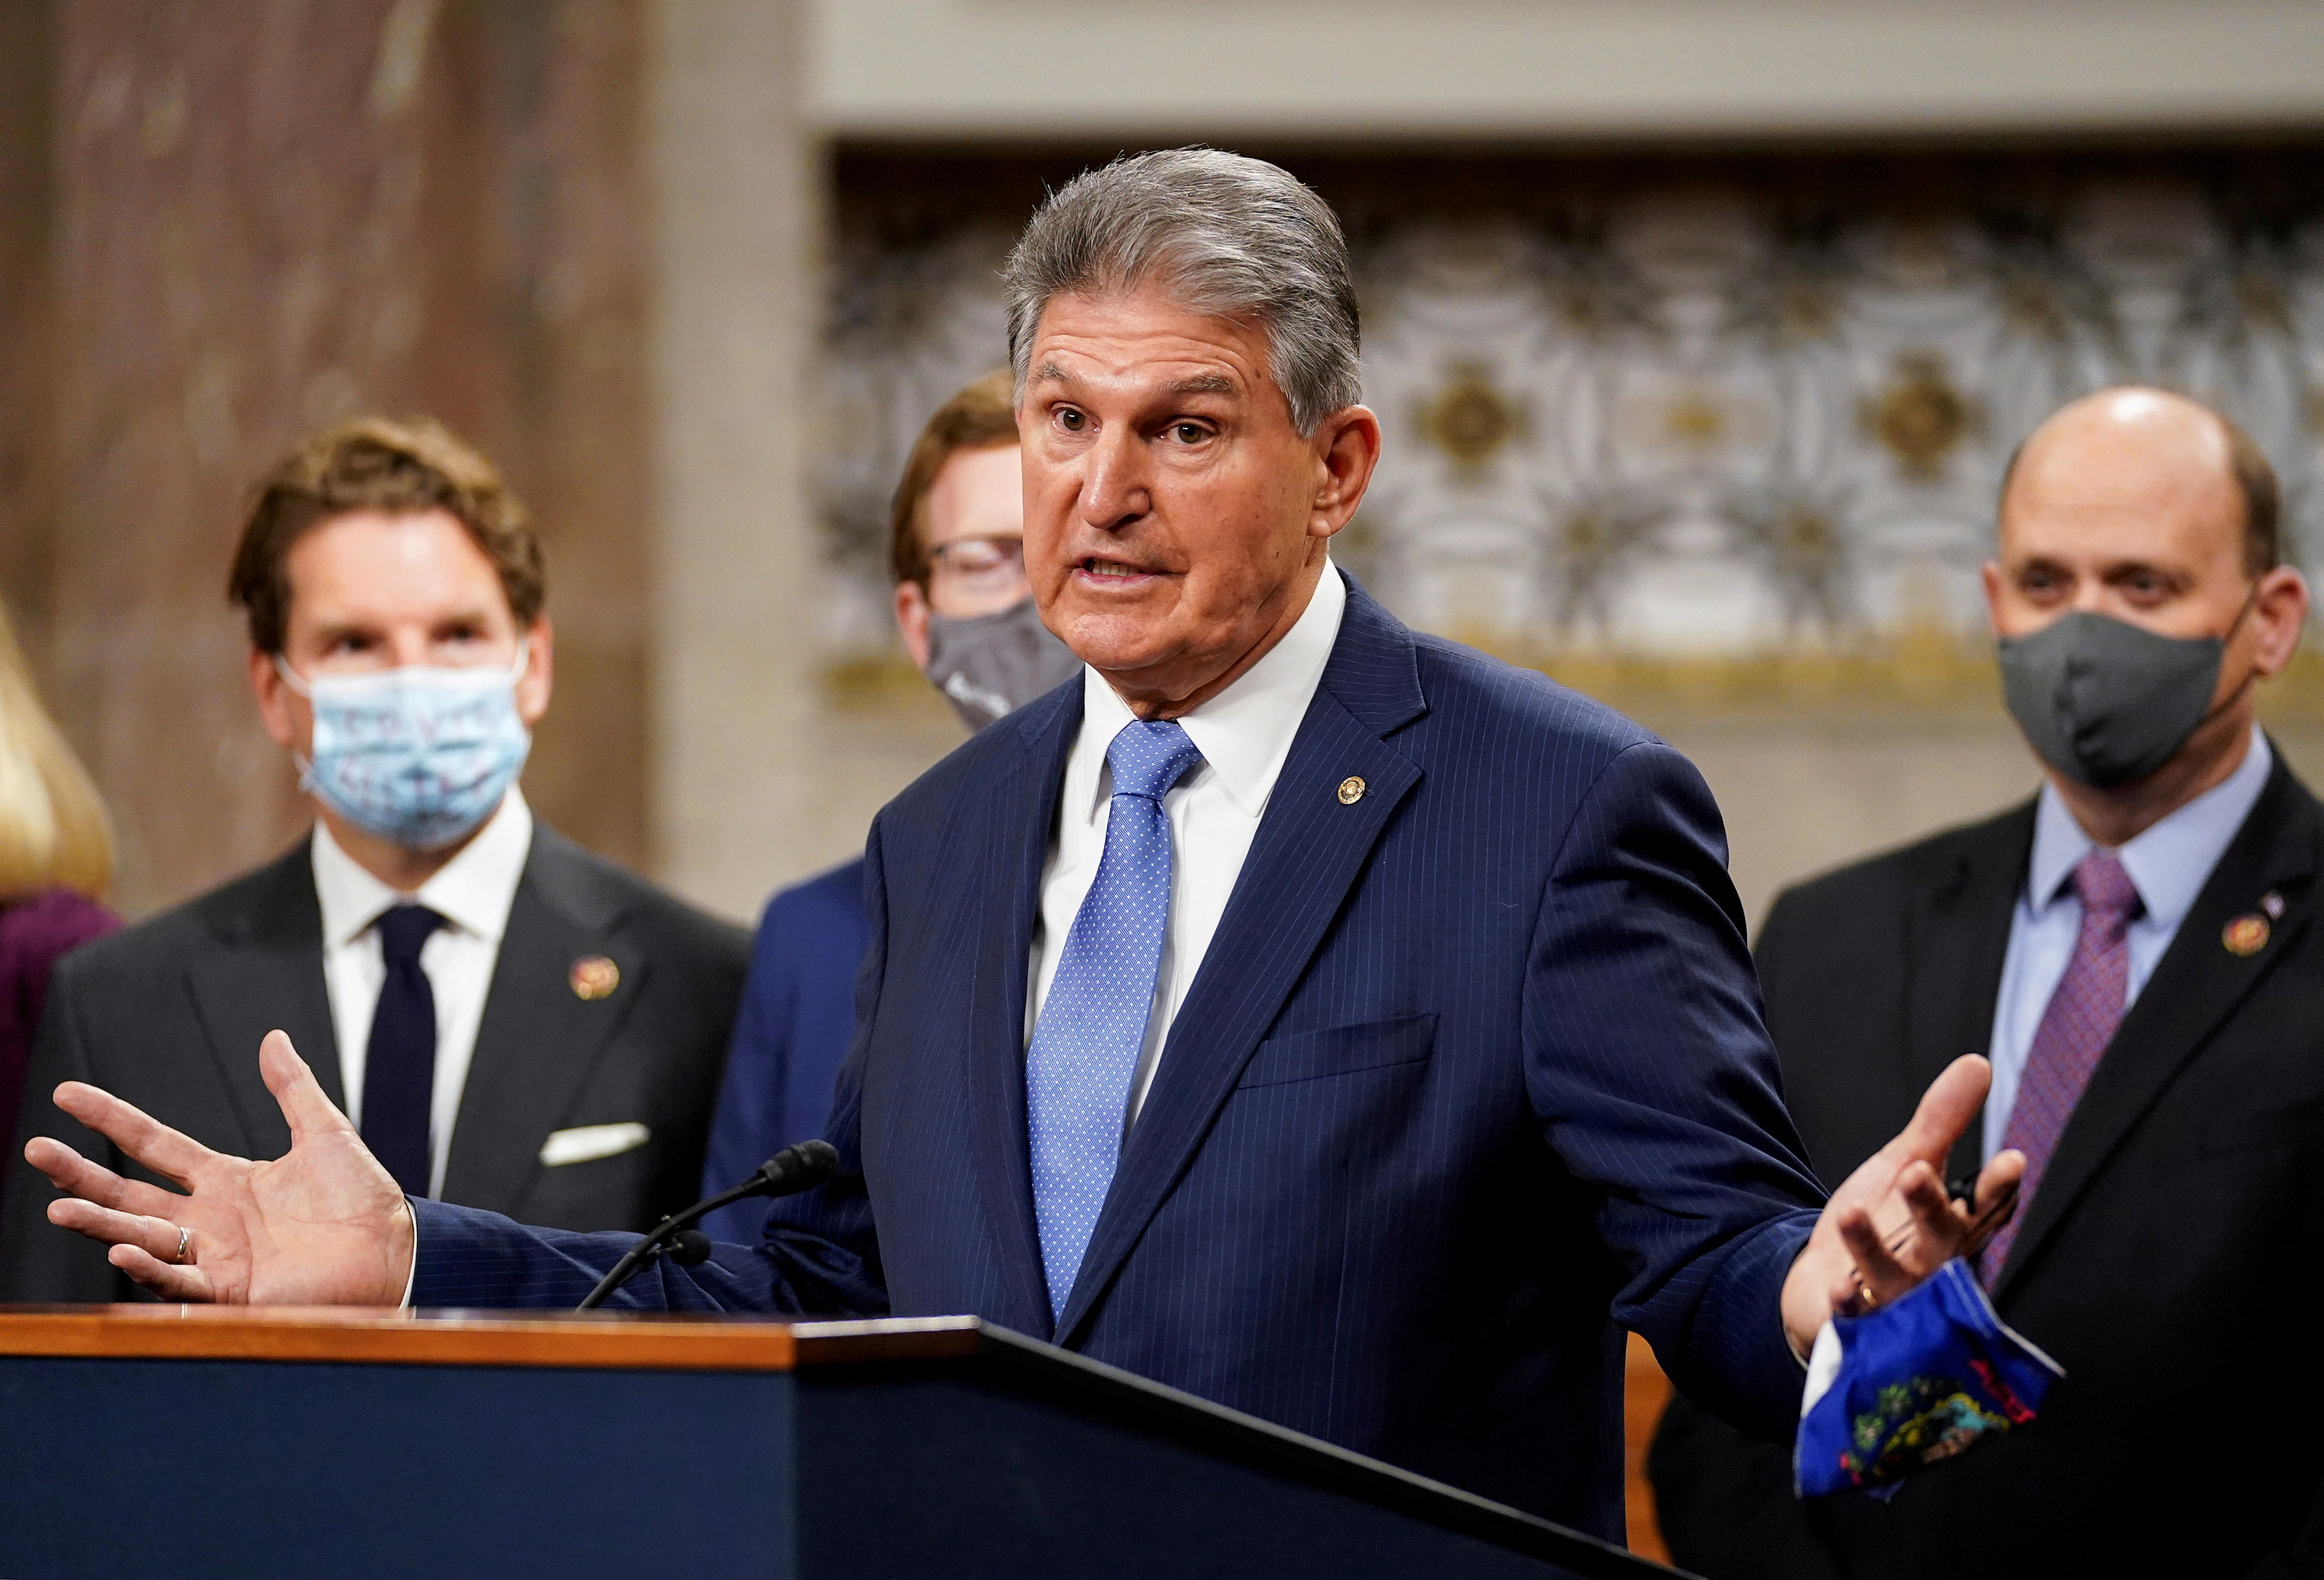 U.S. Senator Joe Manchin (D-WVA) removes his mask to speak as bipartisan members of the Senate and House gather to announce a framework for fresh coronavirus disease (COVID-19) relief legislation at a news conference on Capitol Hill in Washington, U.S., December 1, 2020. REUTERS/Kevin Lamarque/File Photo